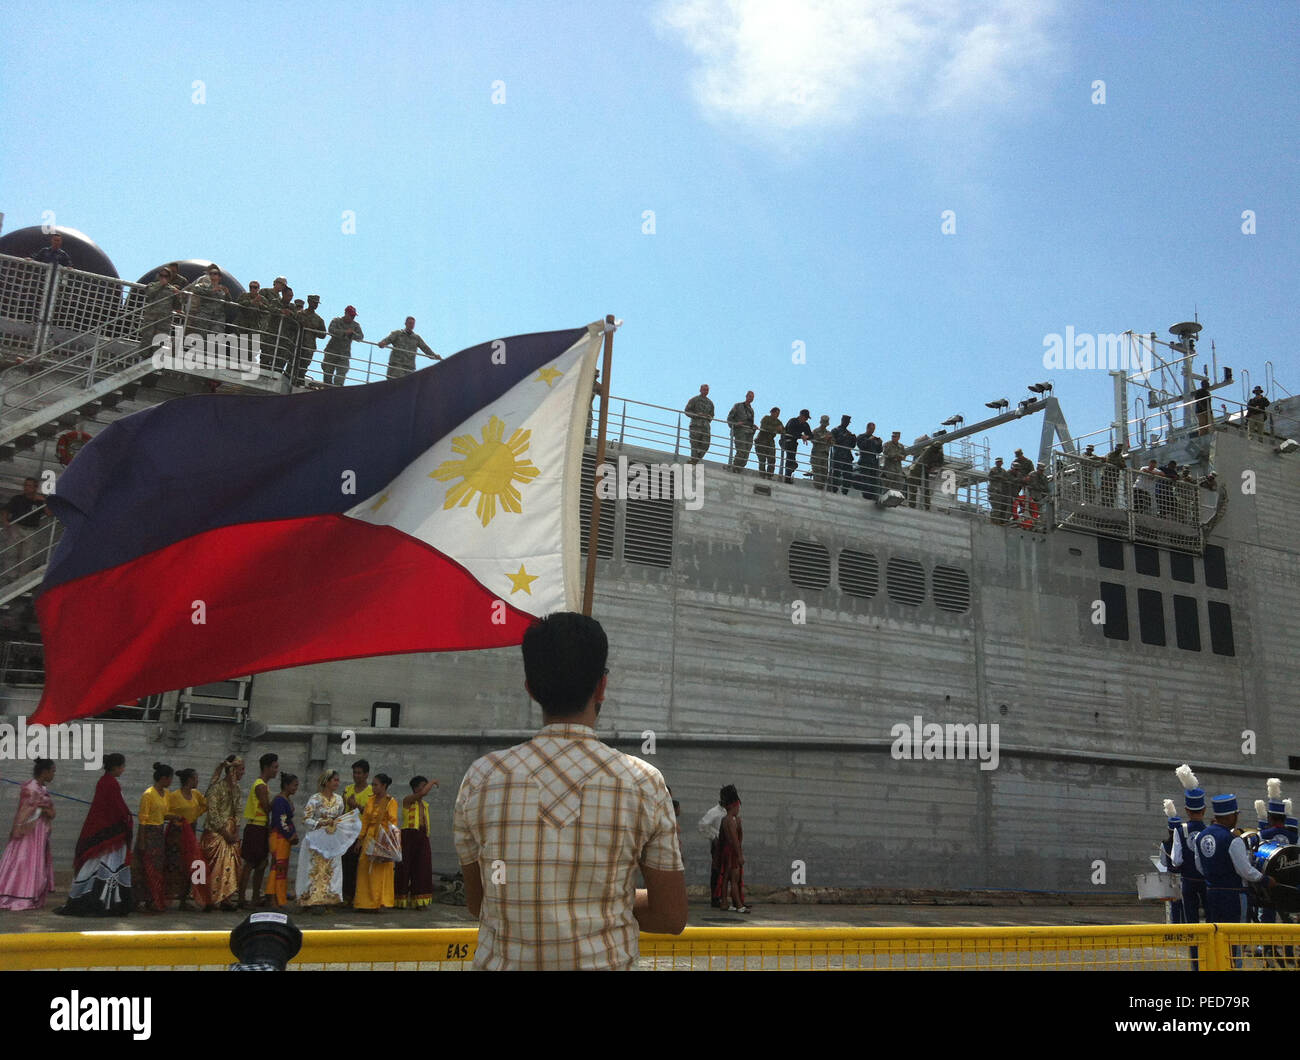 150804-N-ZZ999-029 SAN FERNANDO CITY, Philippines (Aug. 4, 2015) – A man holding the flag of Philippines watches as the Military Sealift Command joint high speed vessel USNS Millinocket (JHSV 3) arrives in San Fernando, Aug. 4. Millinocket is in the Philippines for the fourth stop of Pacific Partnership 2015. Millinocket and embarked Task Force Forager are serving as the secondary platform for Pacific Partnership, led by an expeditionary command element from the Navy's 30th Naval Construction Regiment (30 NCR) from Port Hueneme, Calif. Now in its 10th iteration, Pacific Partnership is the larg - Stock Image